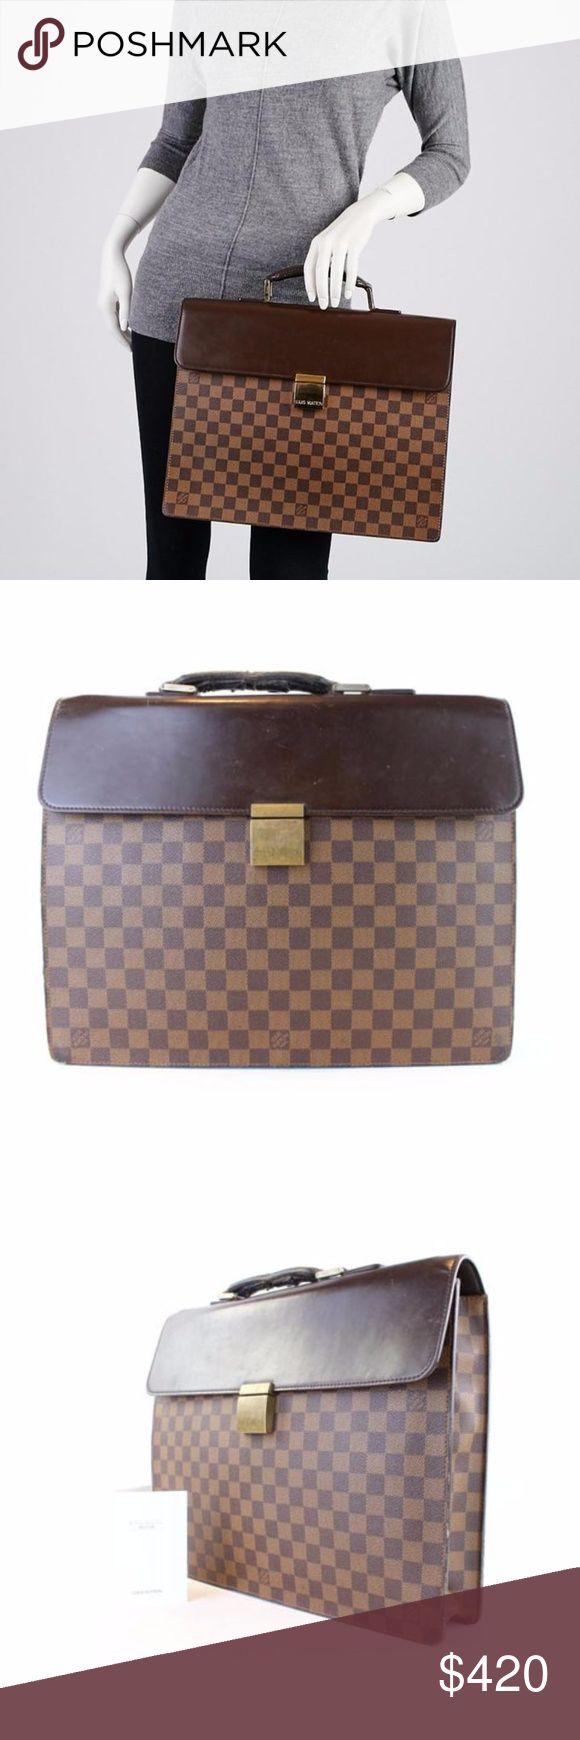 Louis Vuitton Damier Altona Pm 1lj11119 Laptop Bag OVERALL FAIR- CONDITION ( 5.75/10 or CD ) Includes LV Care Booklet Retail $2300 Signs of Wear: Rubs on exterior and interior. Corners and leather trim show rubbing and scuffs. Handles are heavily worn with a crack in the middle and warping, however it is still strong.  This item does not come with any extra accessories. Please review photos for more details. Color appearance may vary depending on your monitor settings. sku : 1lj11119 Louis…